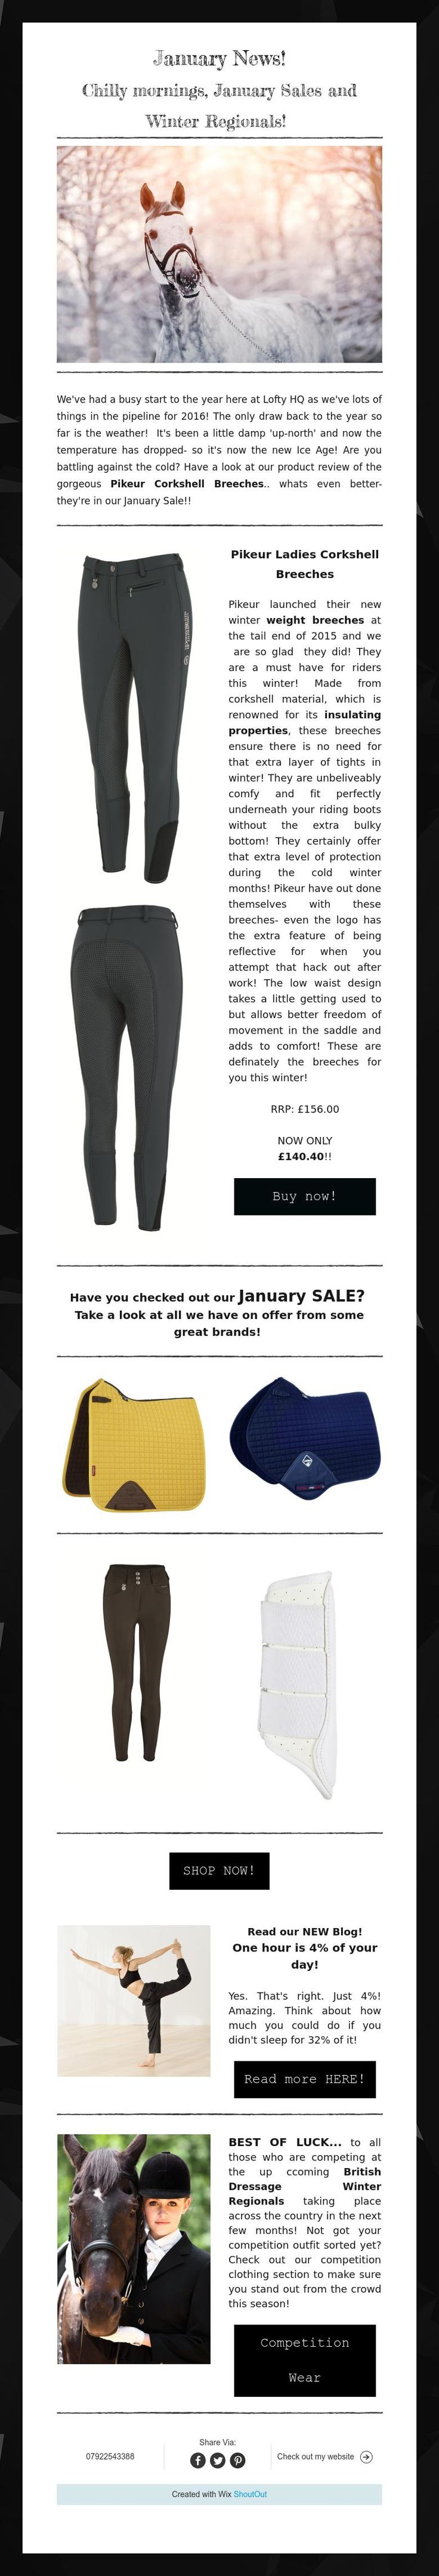 Chilly mornings,January Sales and Winter Regionals! Read our January Newsletter! Want to receive emails? Sign up via our website! www.lofthouse-equestrian.co.uk